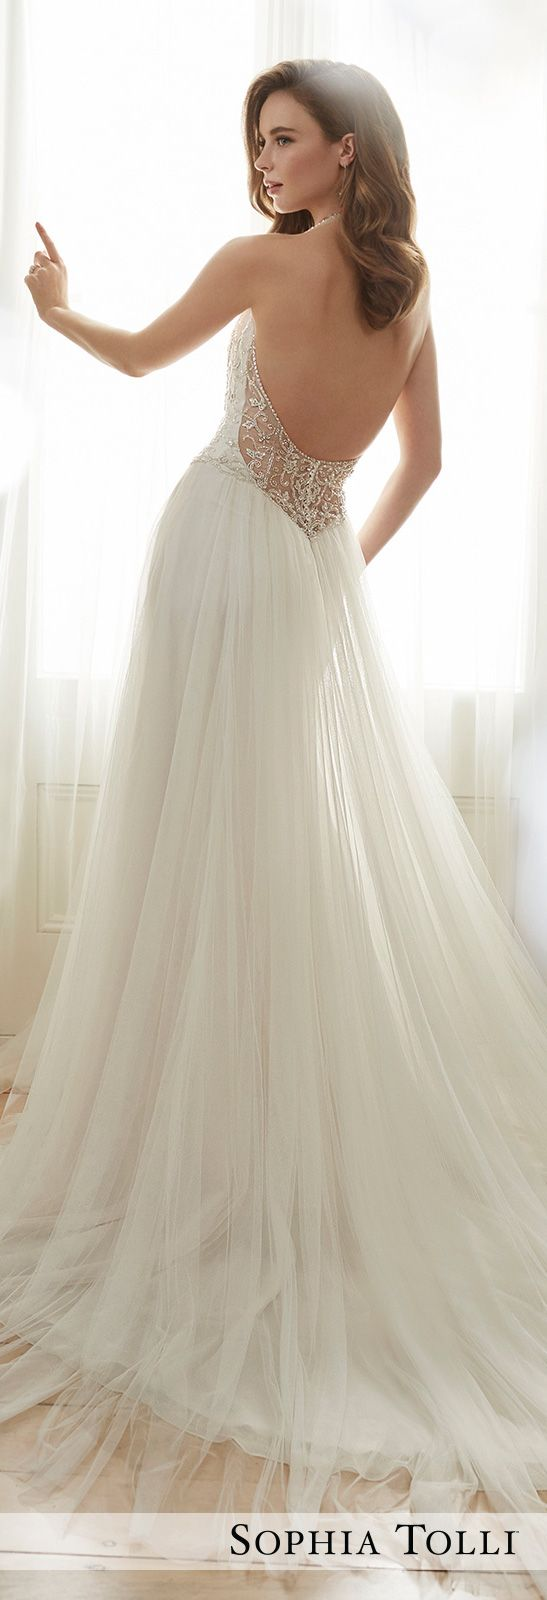 Wedding Dress by Sophia Tolli Spring 2017 Bridal Collection | Style No. » Y11714 Celestia